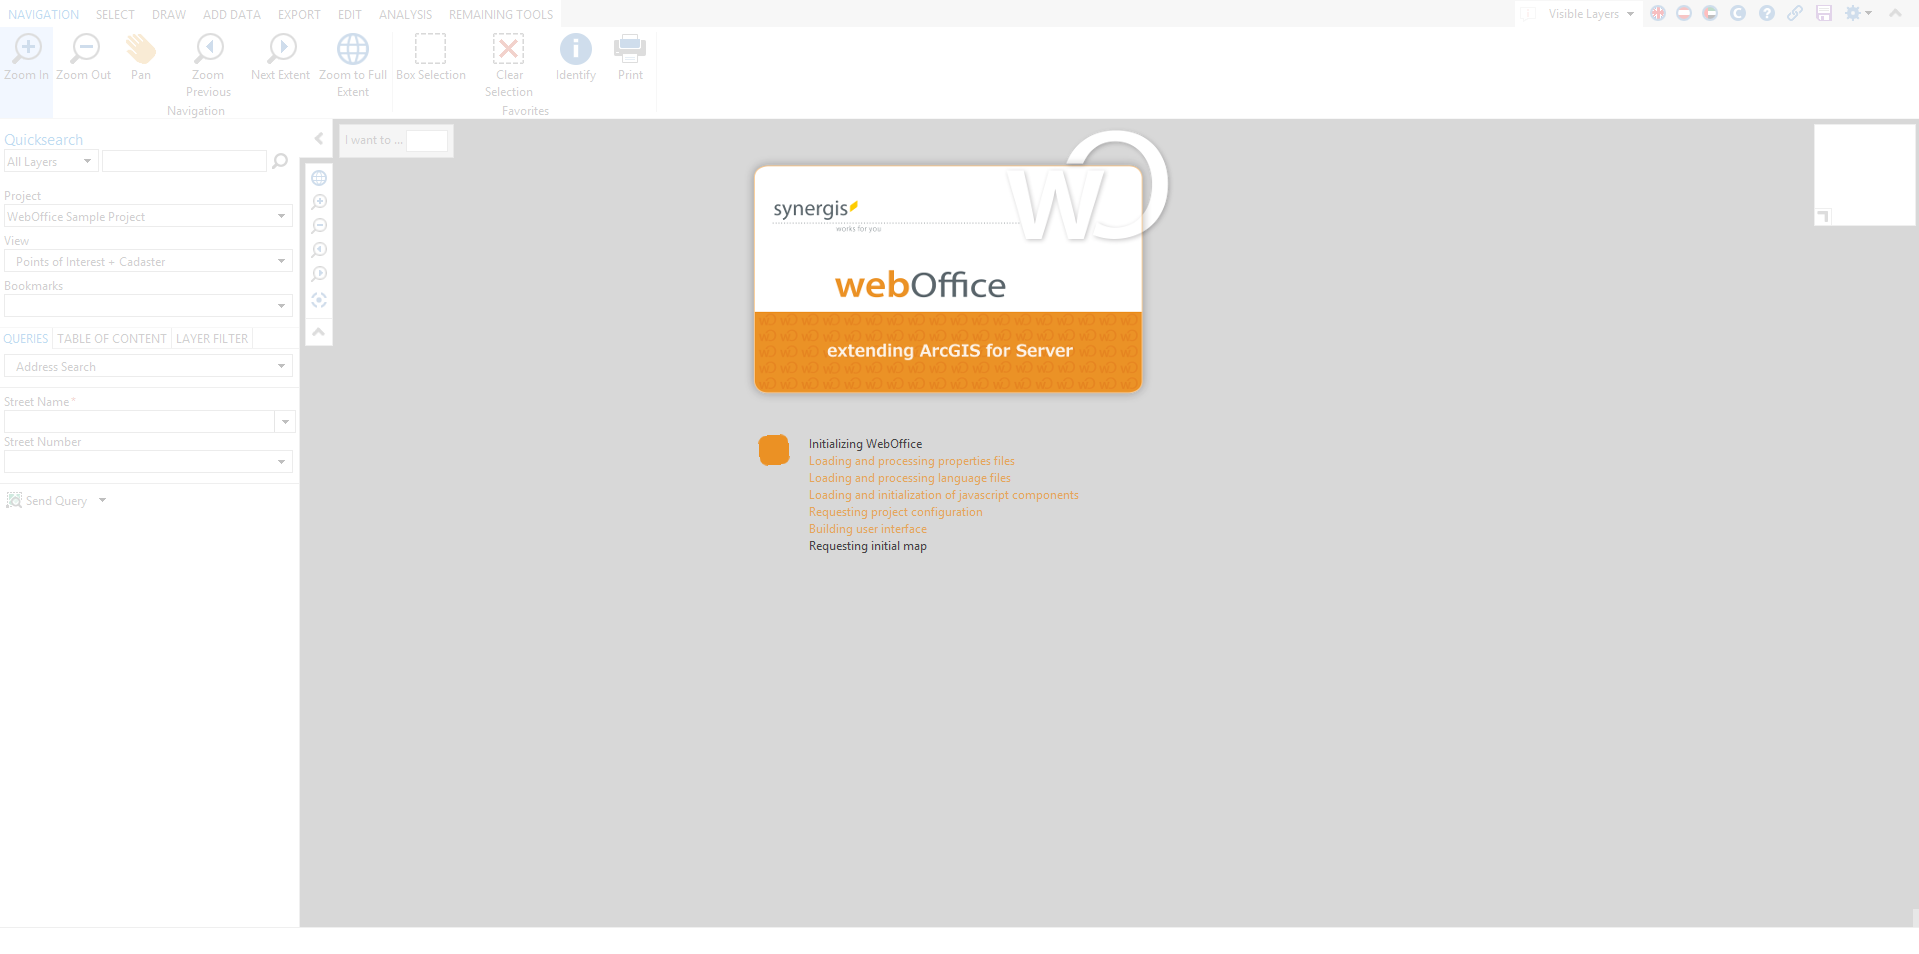 Userdefined grey background color within the map area of the WebOffice core client